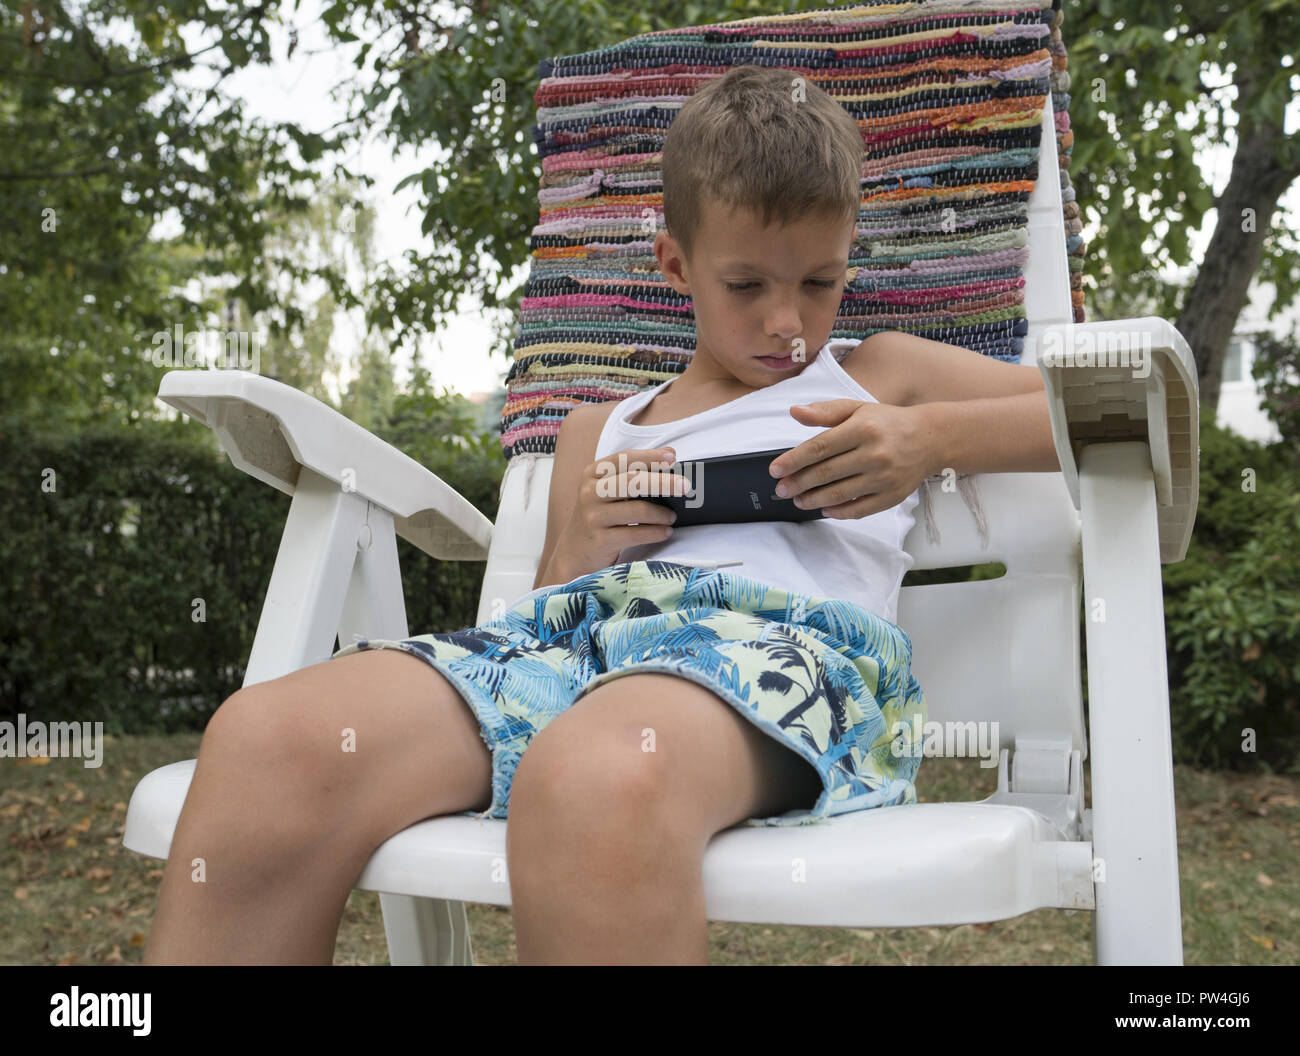 Boy watches a video on his cell phone in the yard in Zielona Gora, Poland. - Stock Image